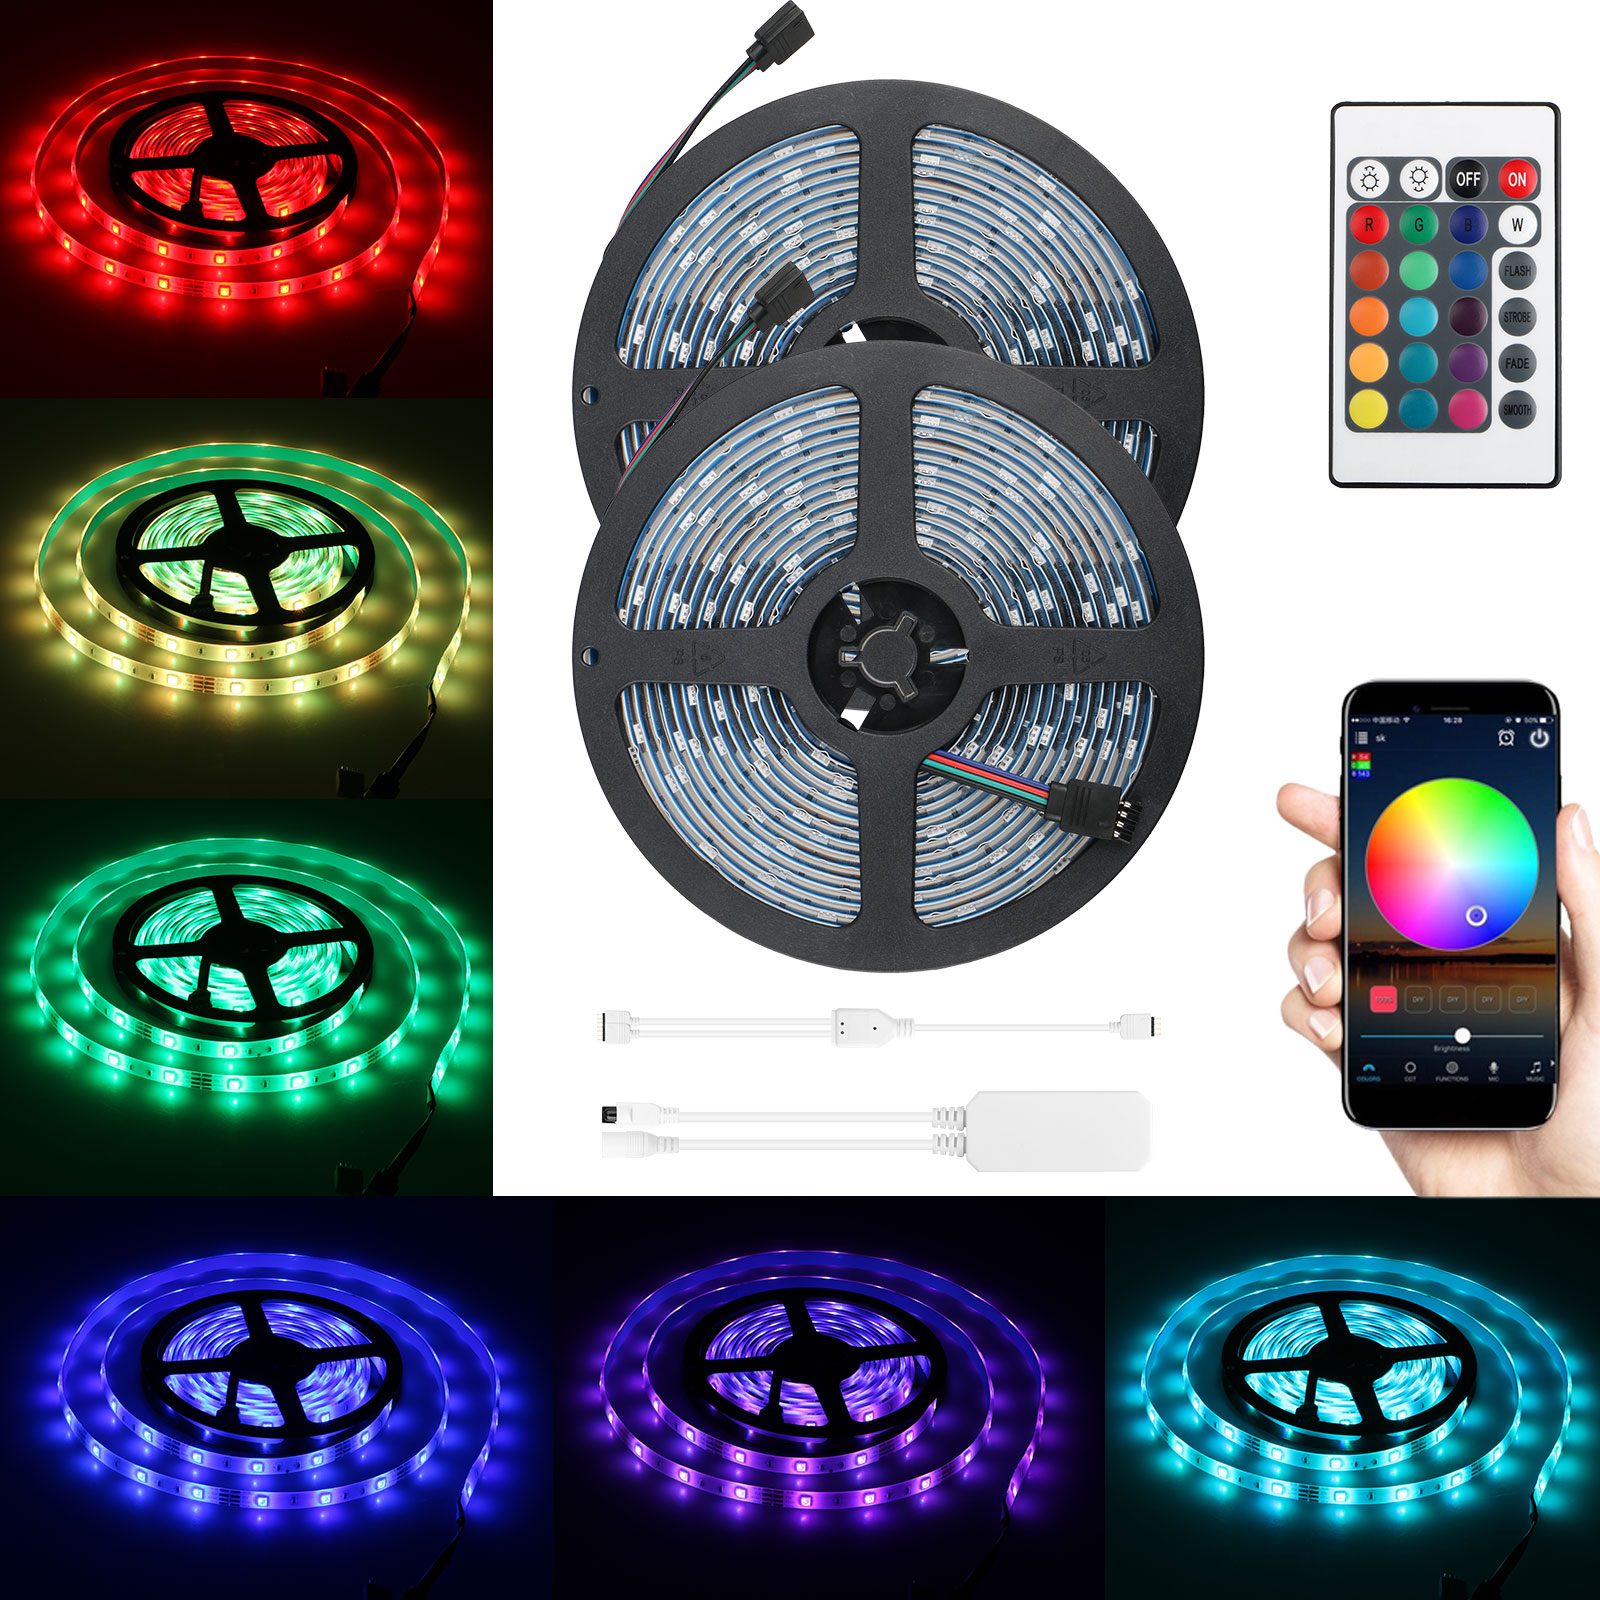 Led Light Strips Rgb 2 Pack Rgb Led Light Strip 32 8ft Waterproof Smart Wifi Controller Strip Light Kit 5050 Smd Led Lights Working With Android And Ios System